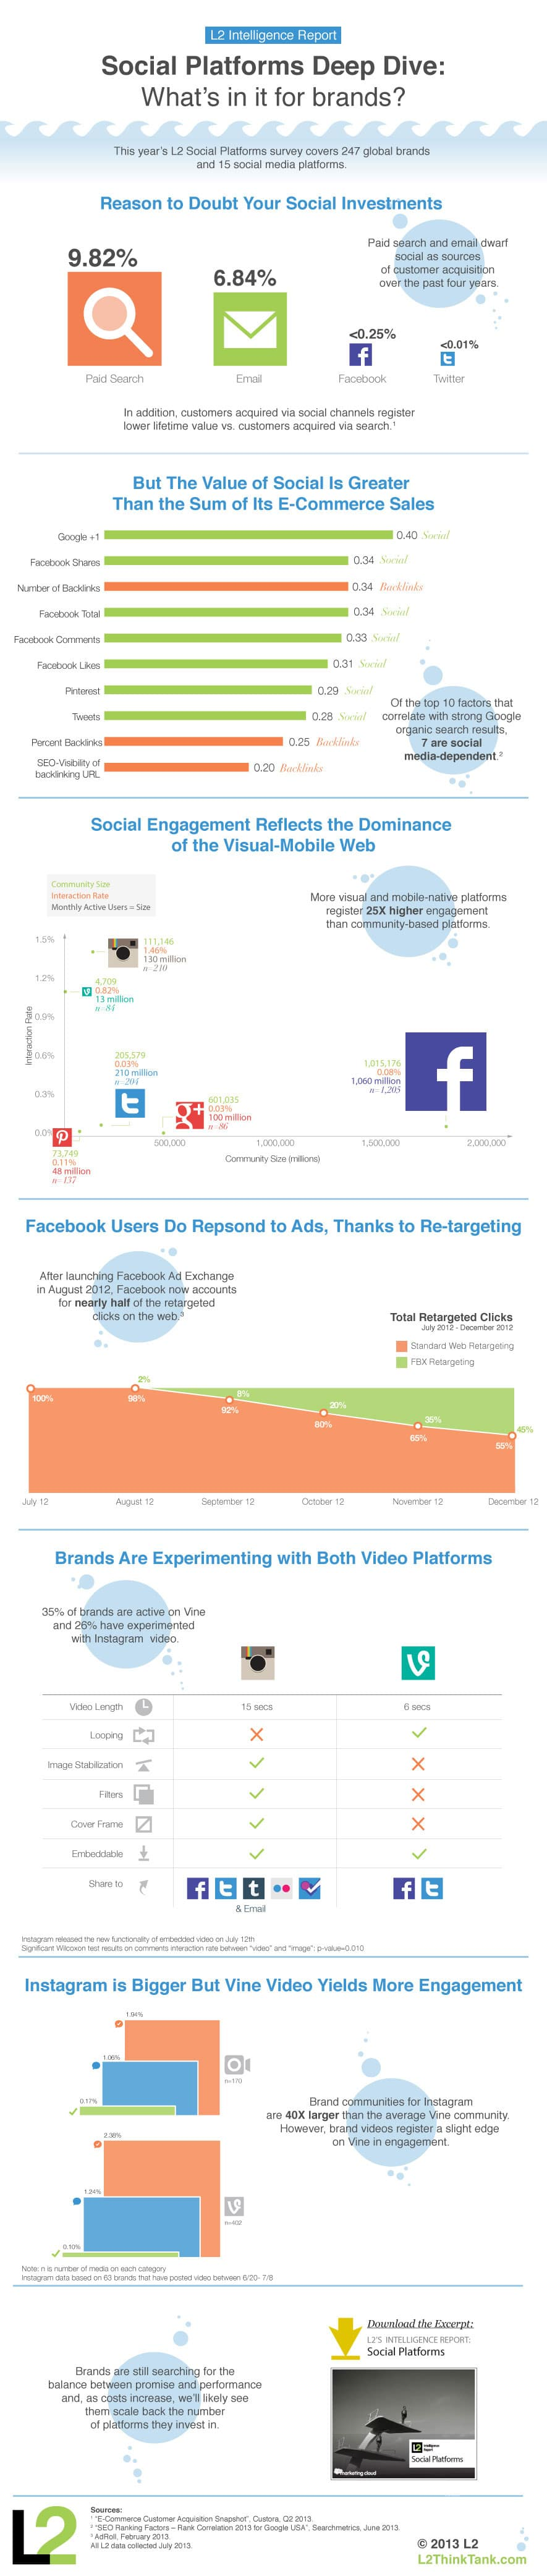 Social Media For Brands: Is It A Good Time Investment? [Infographic]